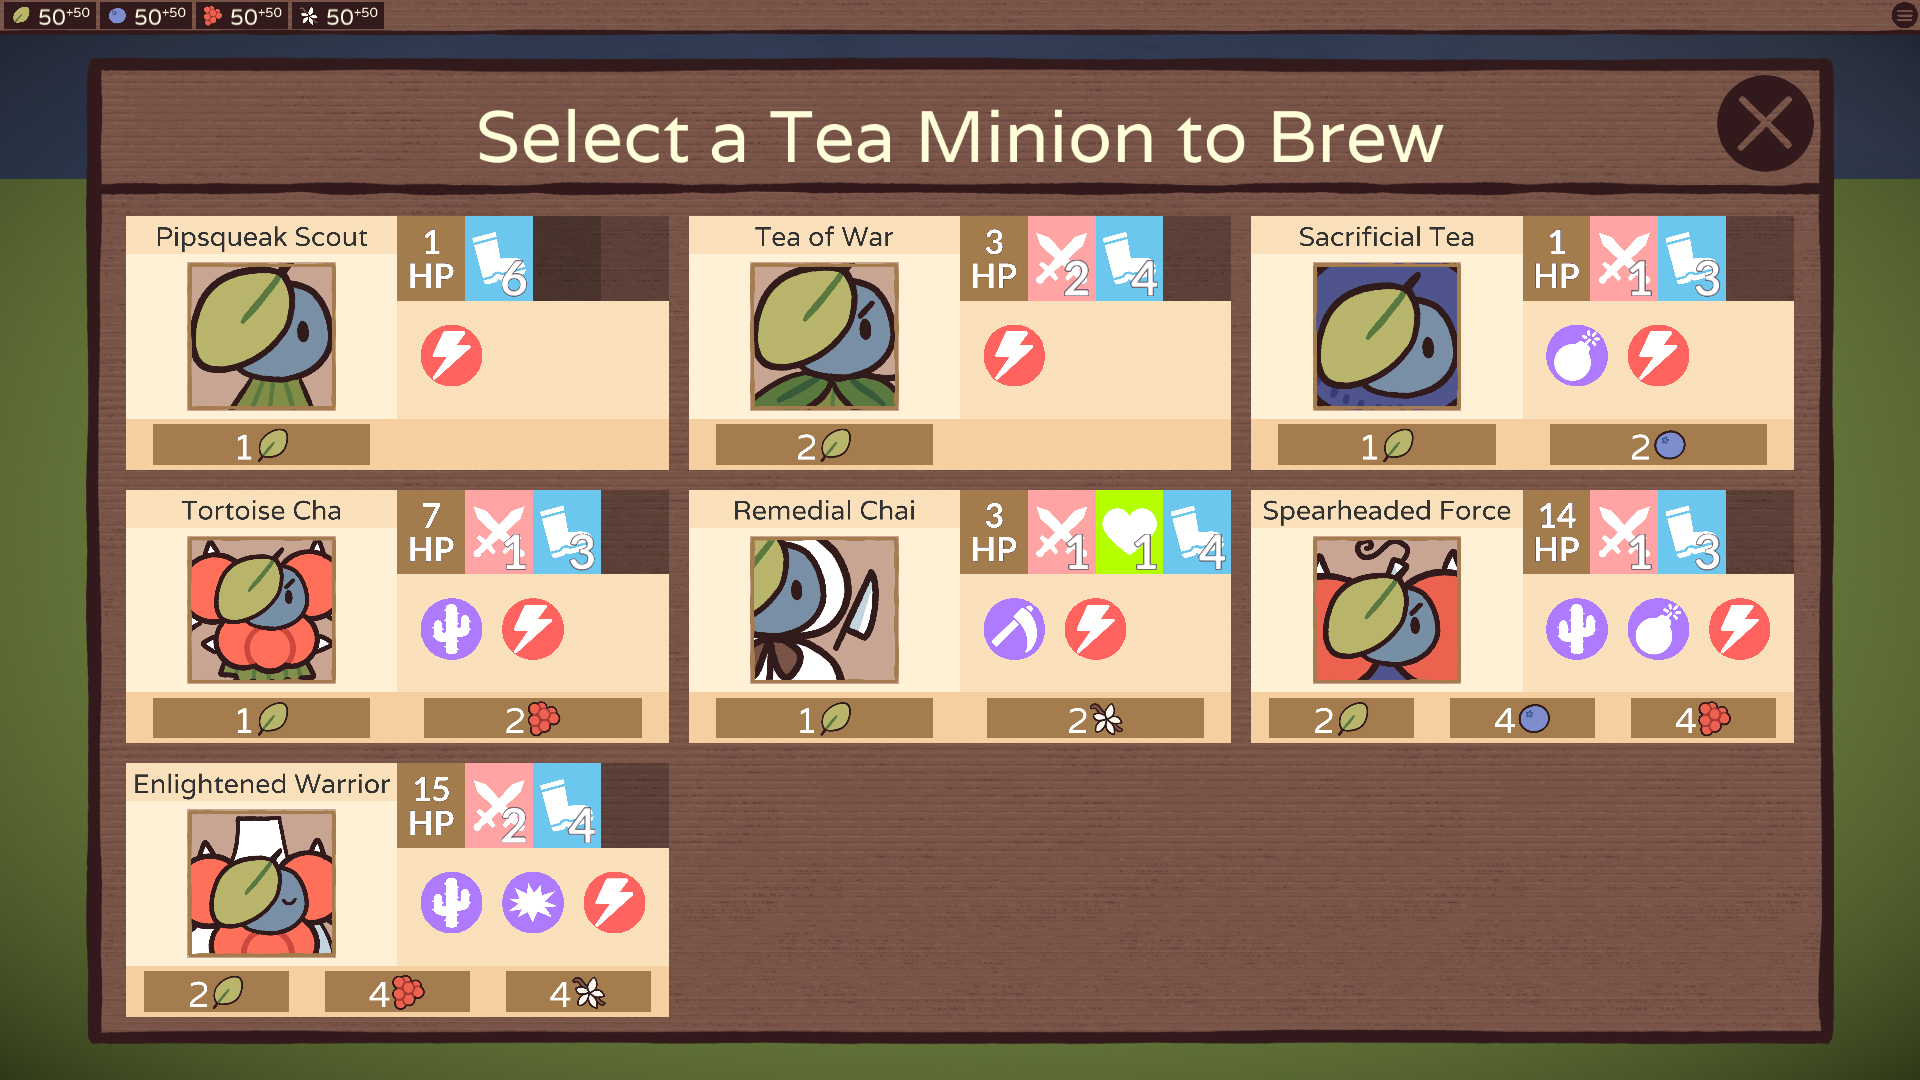 A table of tea minions that can be brewed